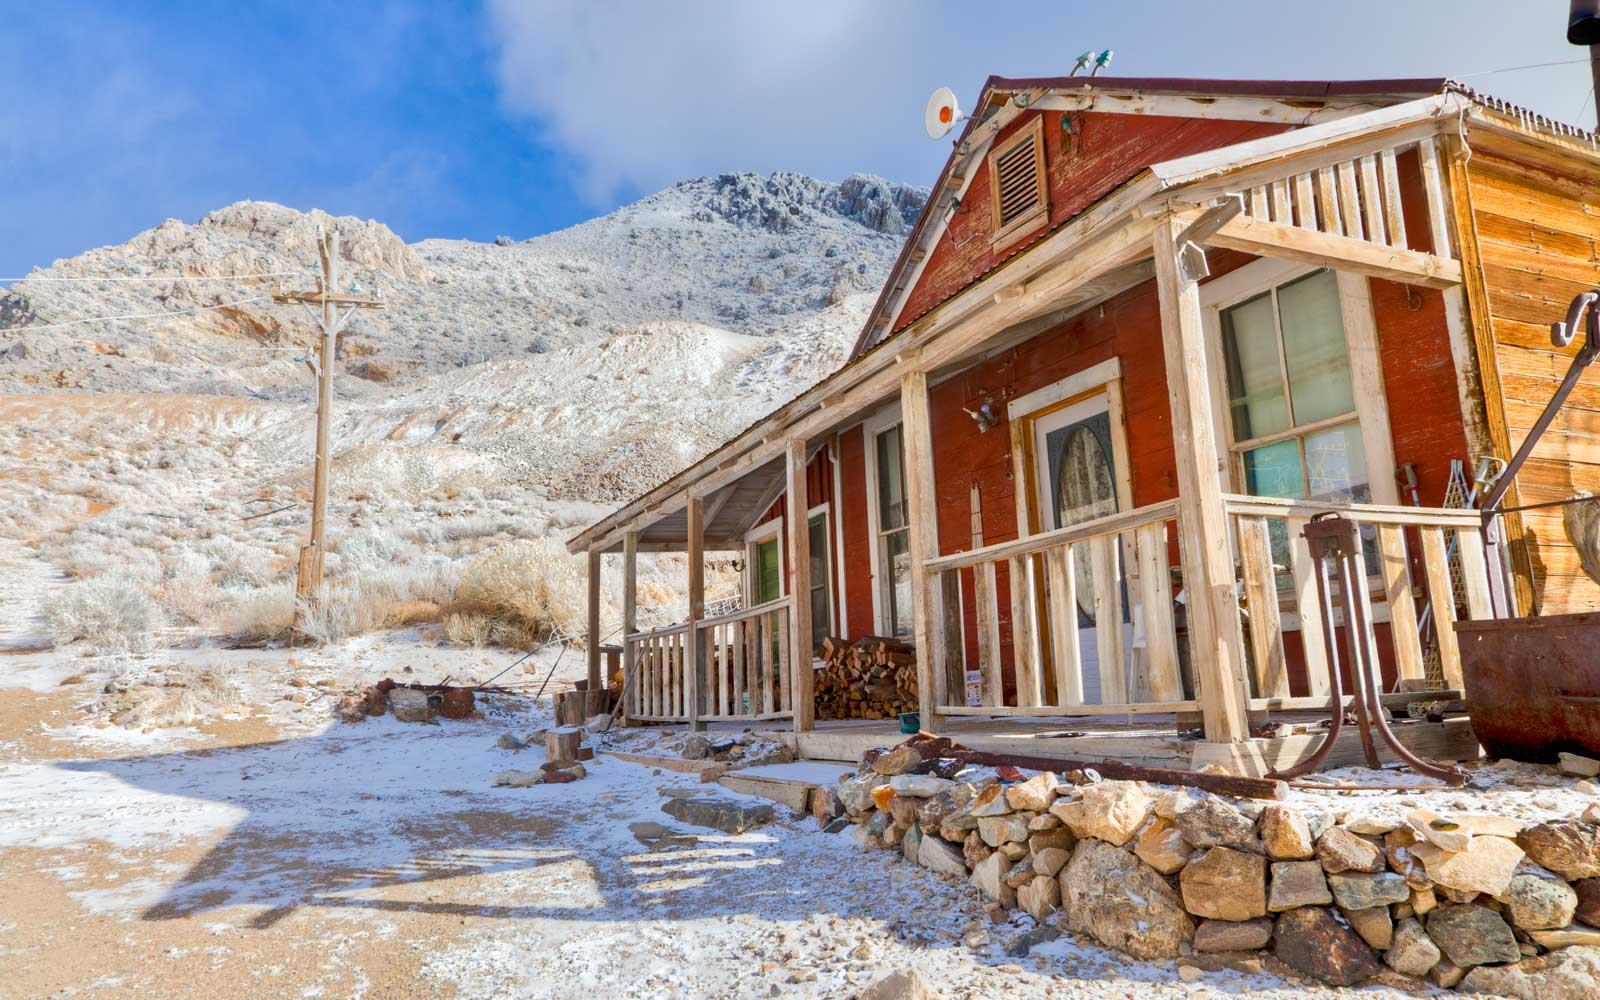 This California Ghost Town Is Being Turned Into an Exciting New Vacation Destination